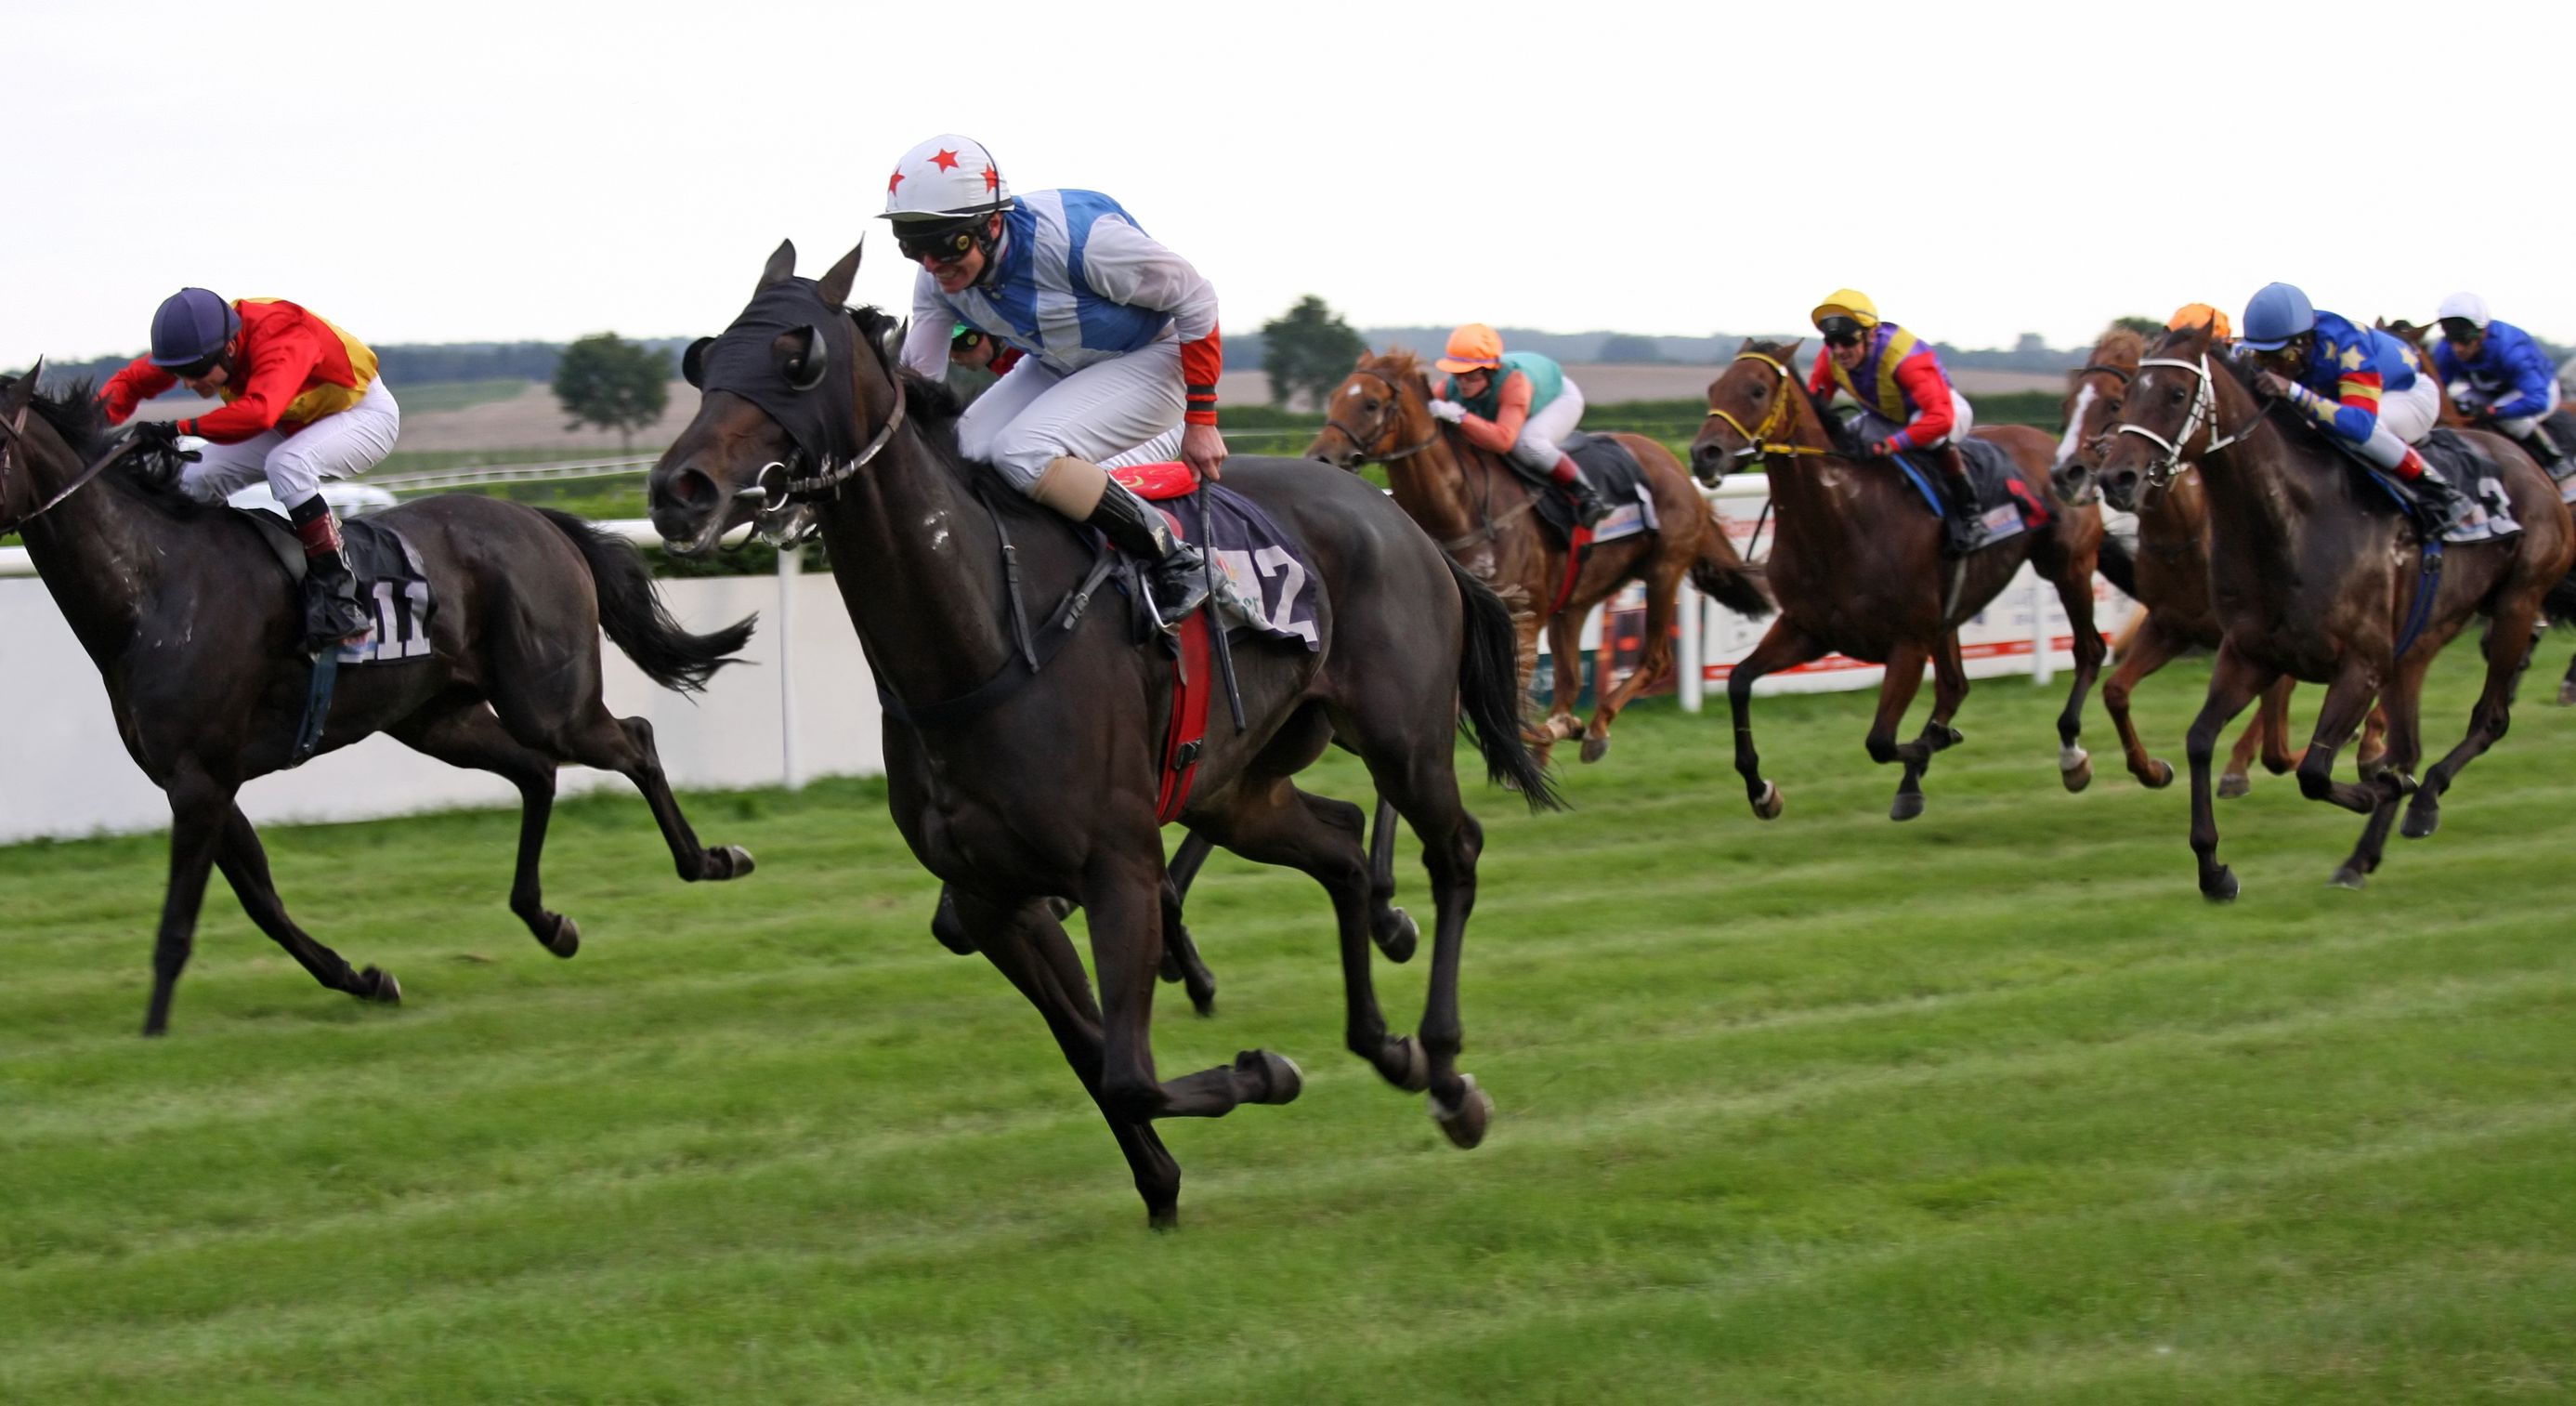 Horse Racing Jockey Facts And Form To Help You Pick More Winning Bets